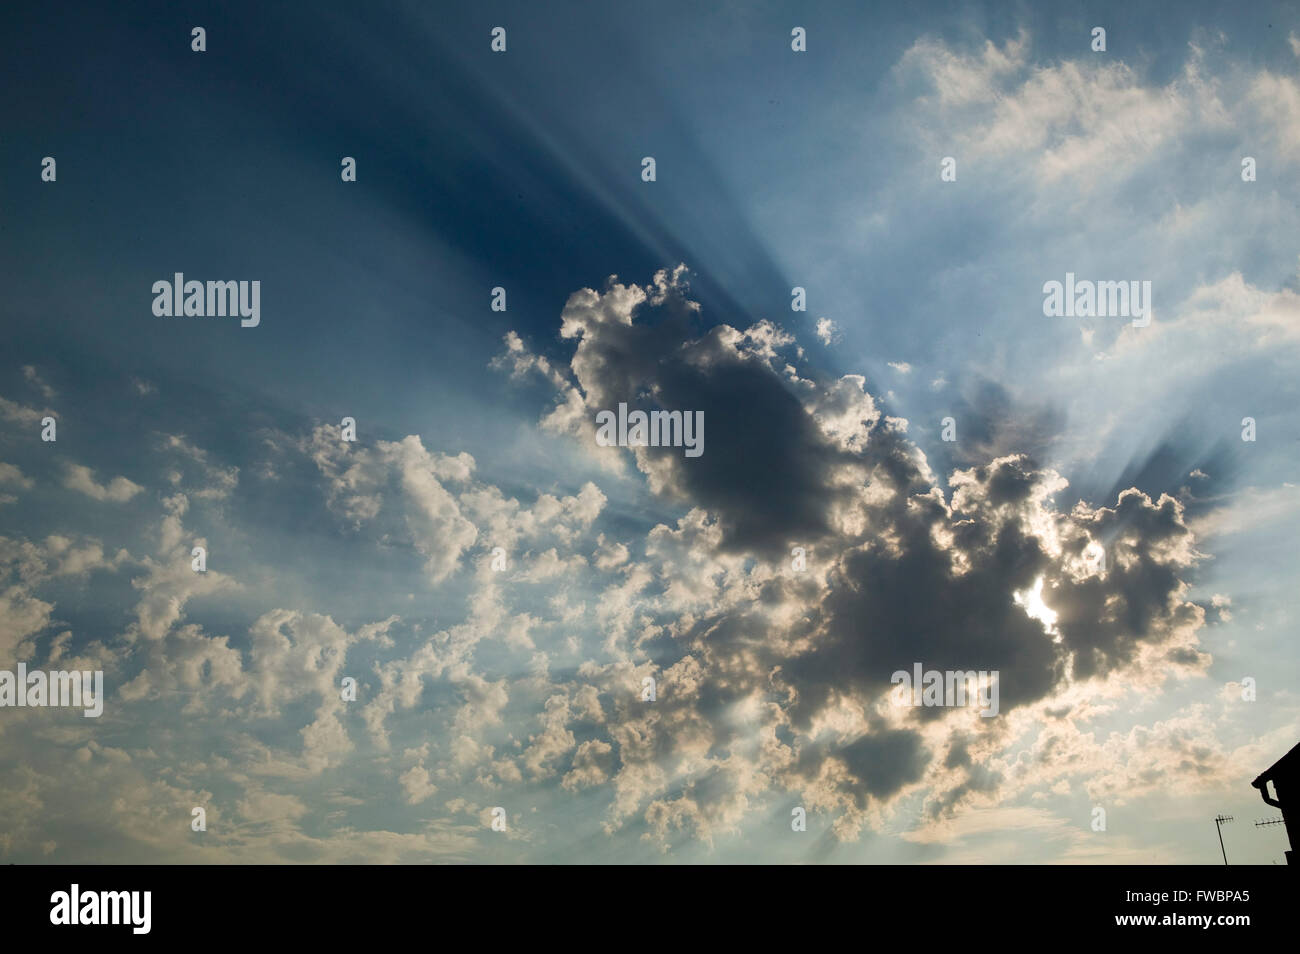 Large clouds block out the sun sending huge rays of light spilling out from around the edges. - Stock Image